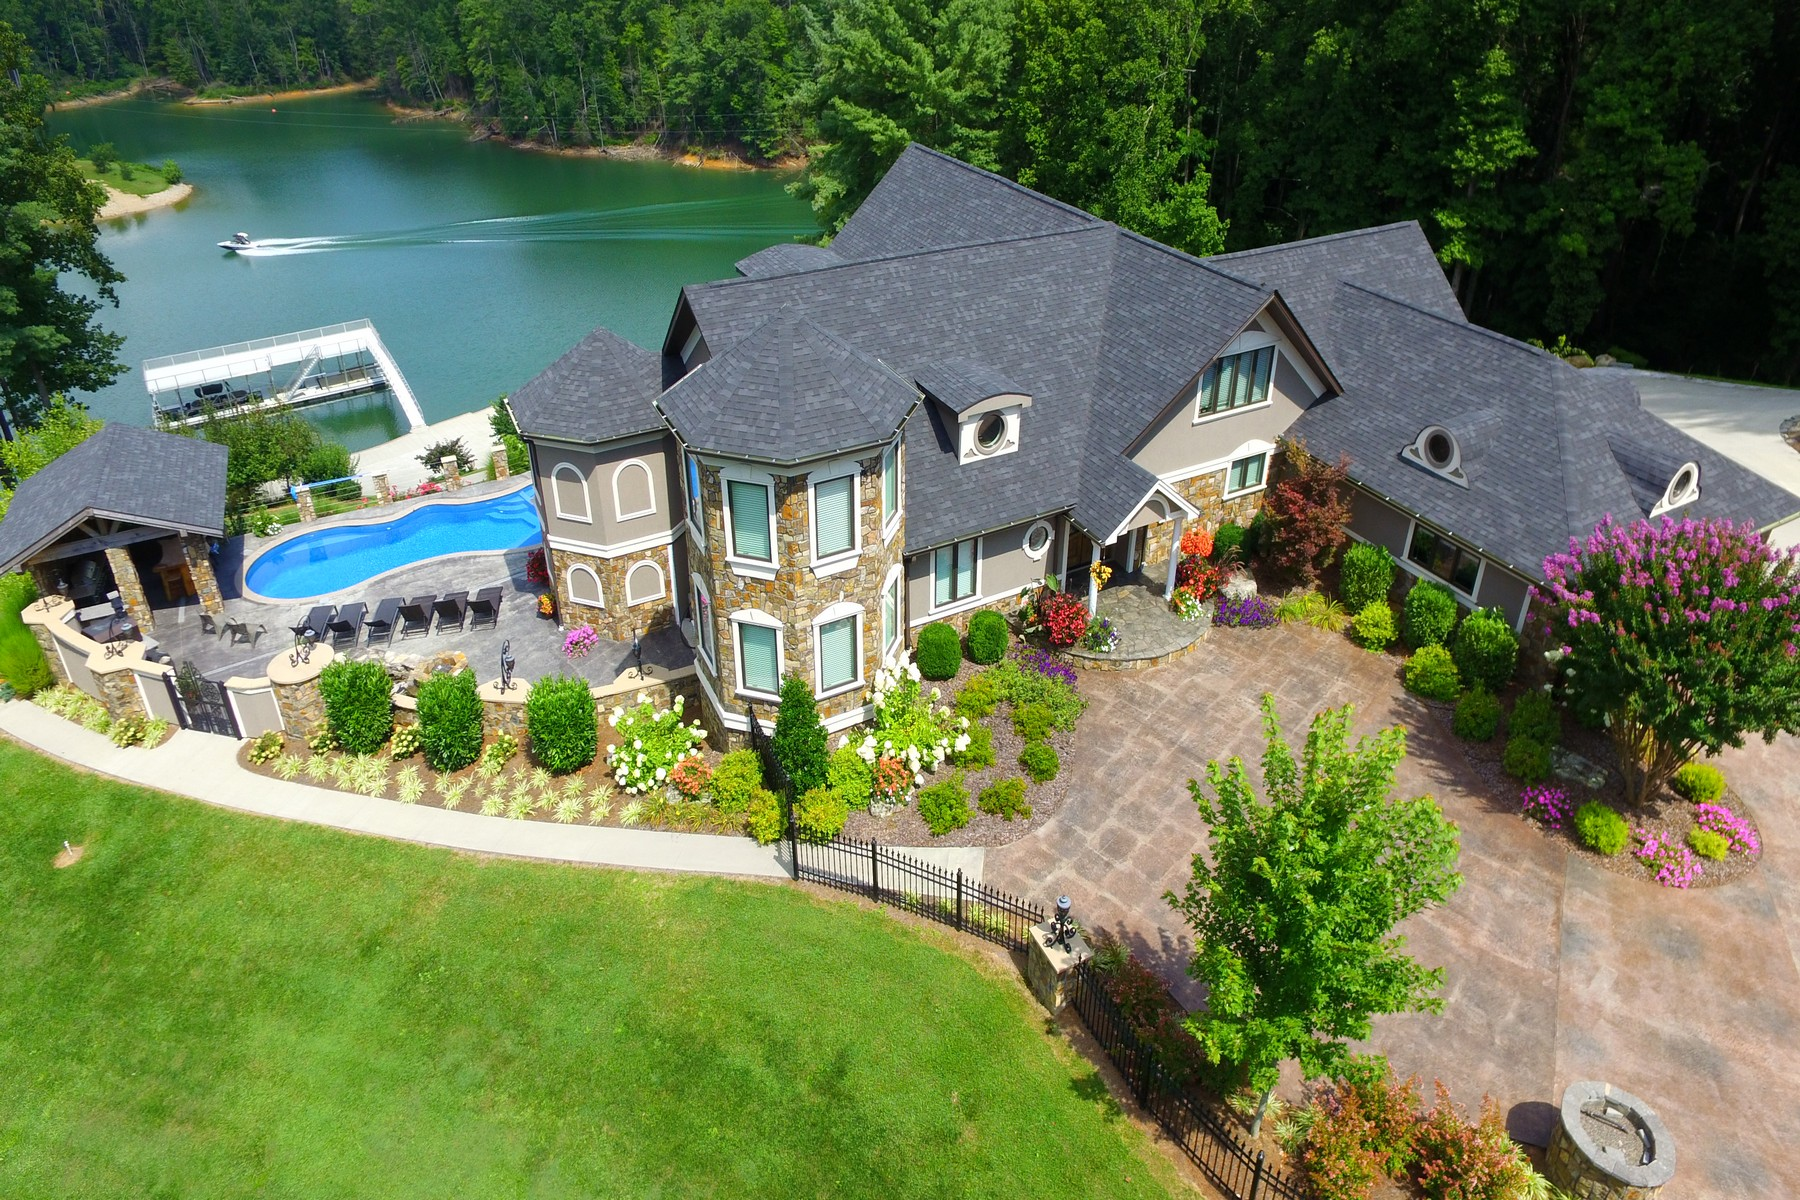 Single Family Home for Sale at Spectacular Waterfront Estate 381 Big Oak Drive, Butler, Tennessee 37640 United States